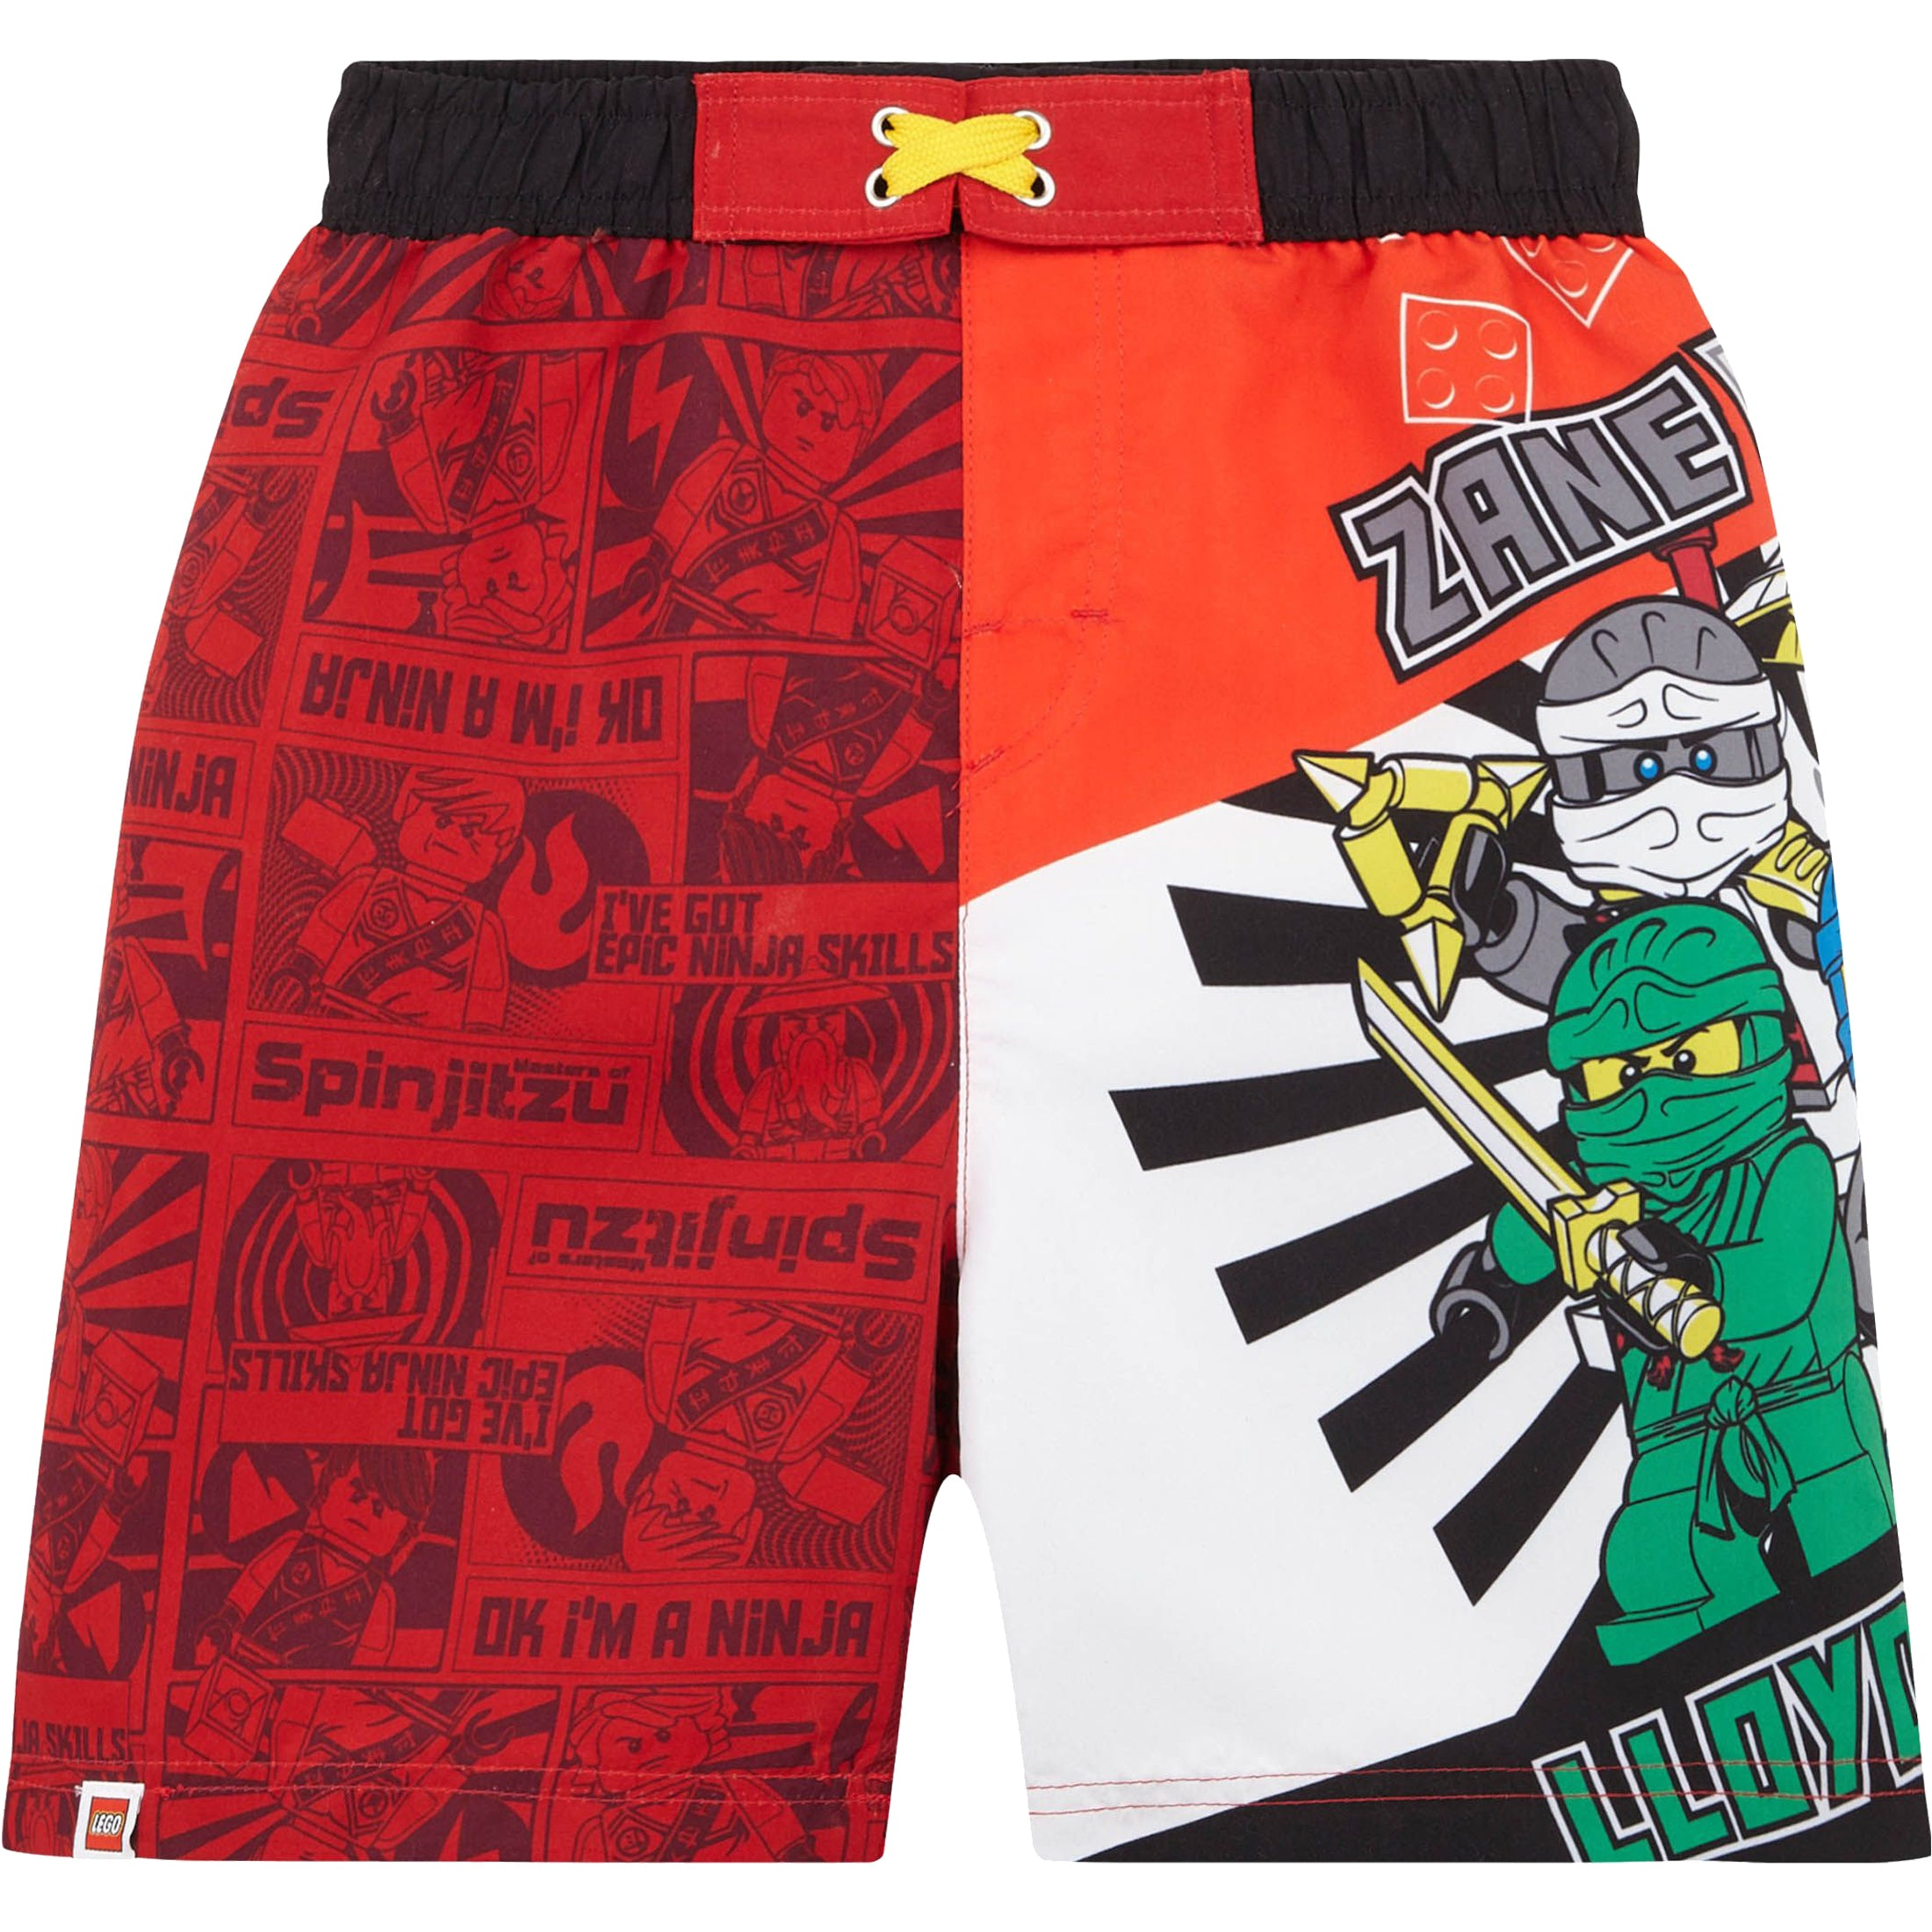 de9bc5ee2d Lego Ninjago Original Boys Swimming Trunks Shorts Swimsuit 3-10 Yrs ...